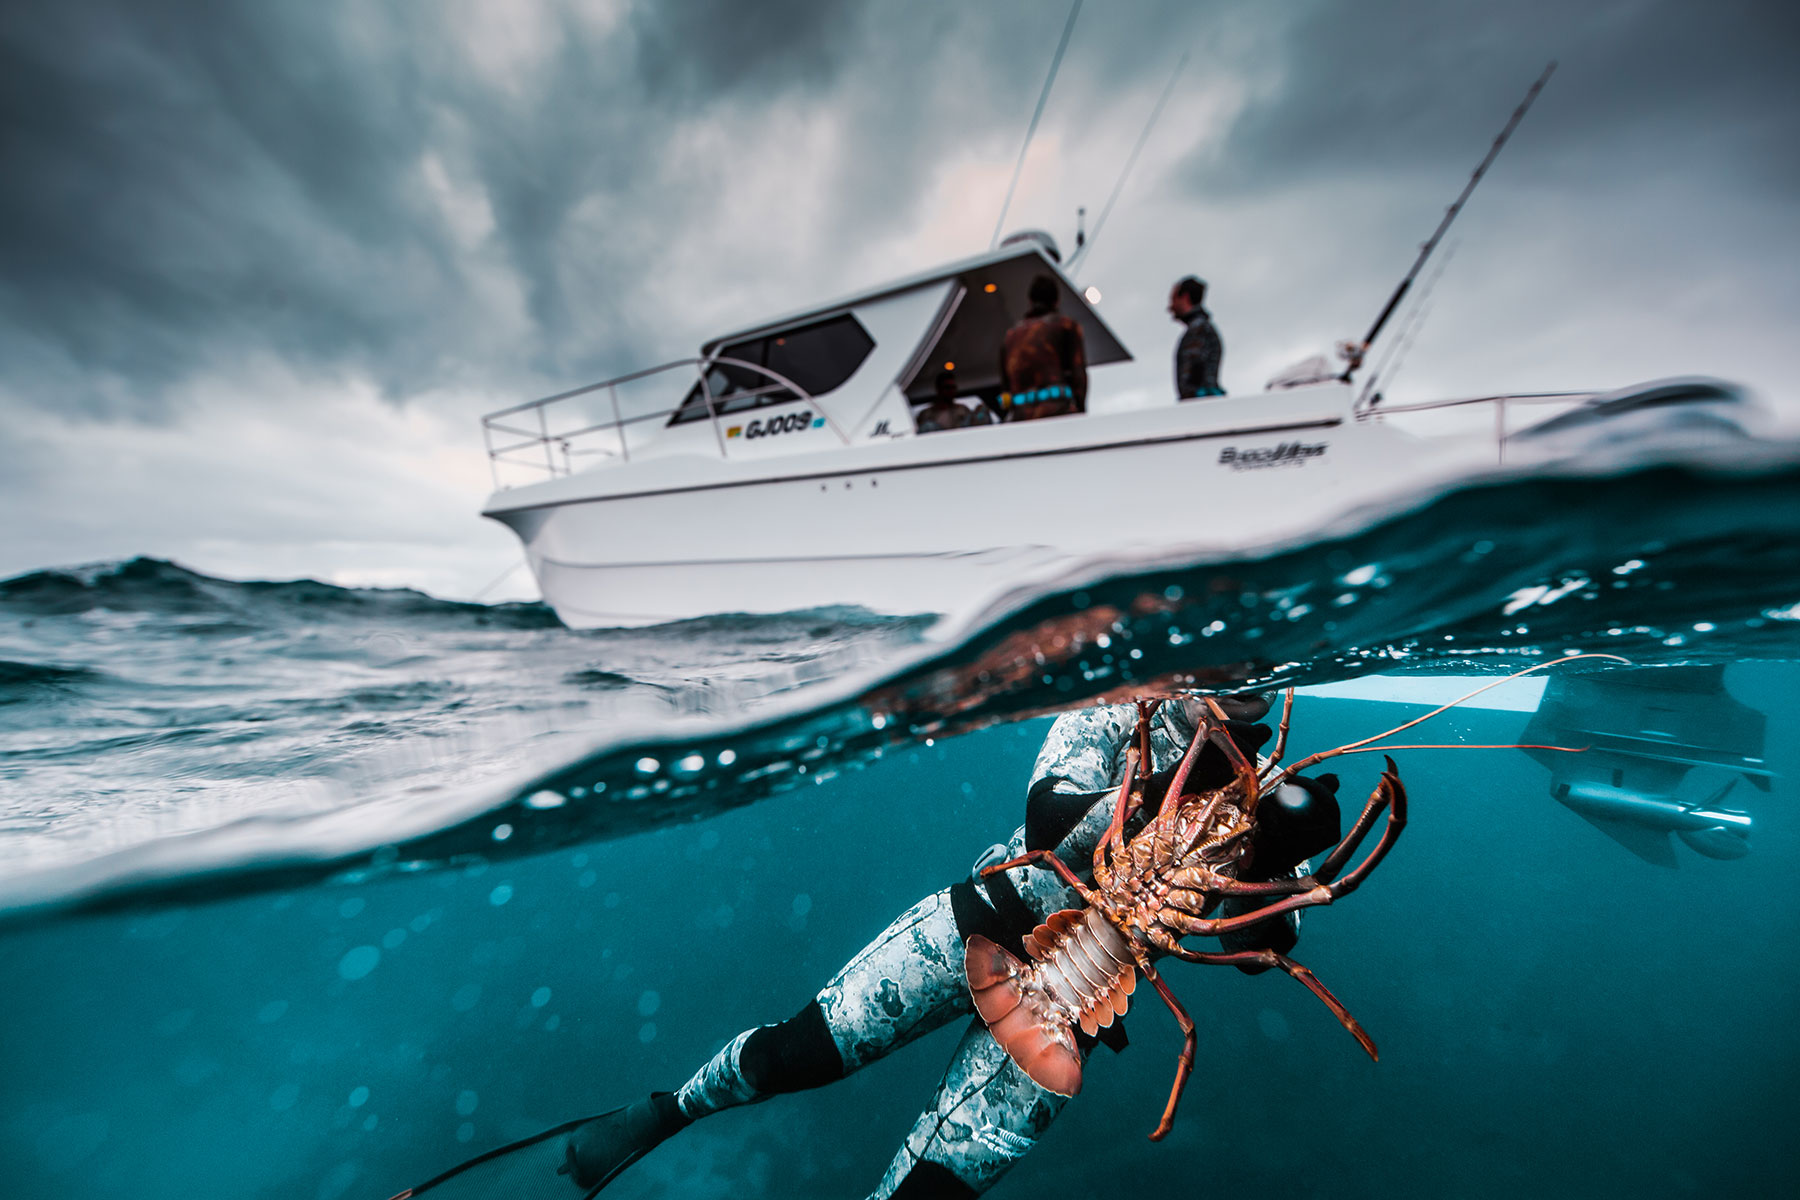 Lobster fishing in Western Australia